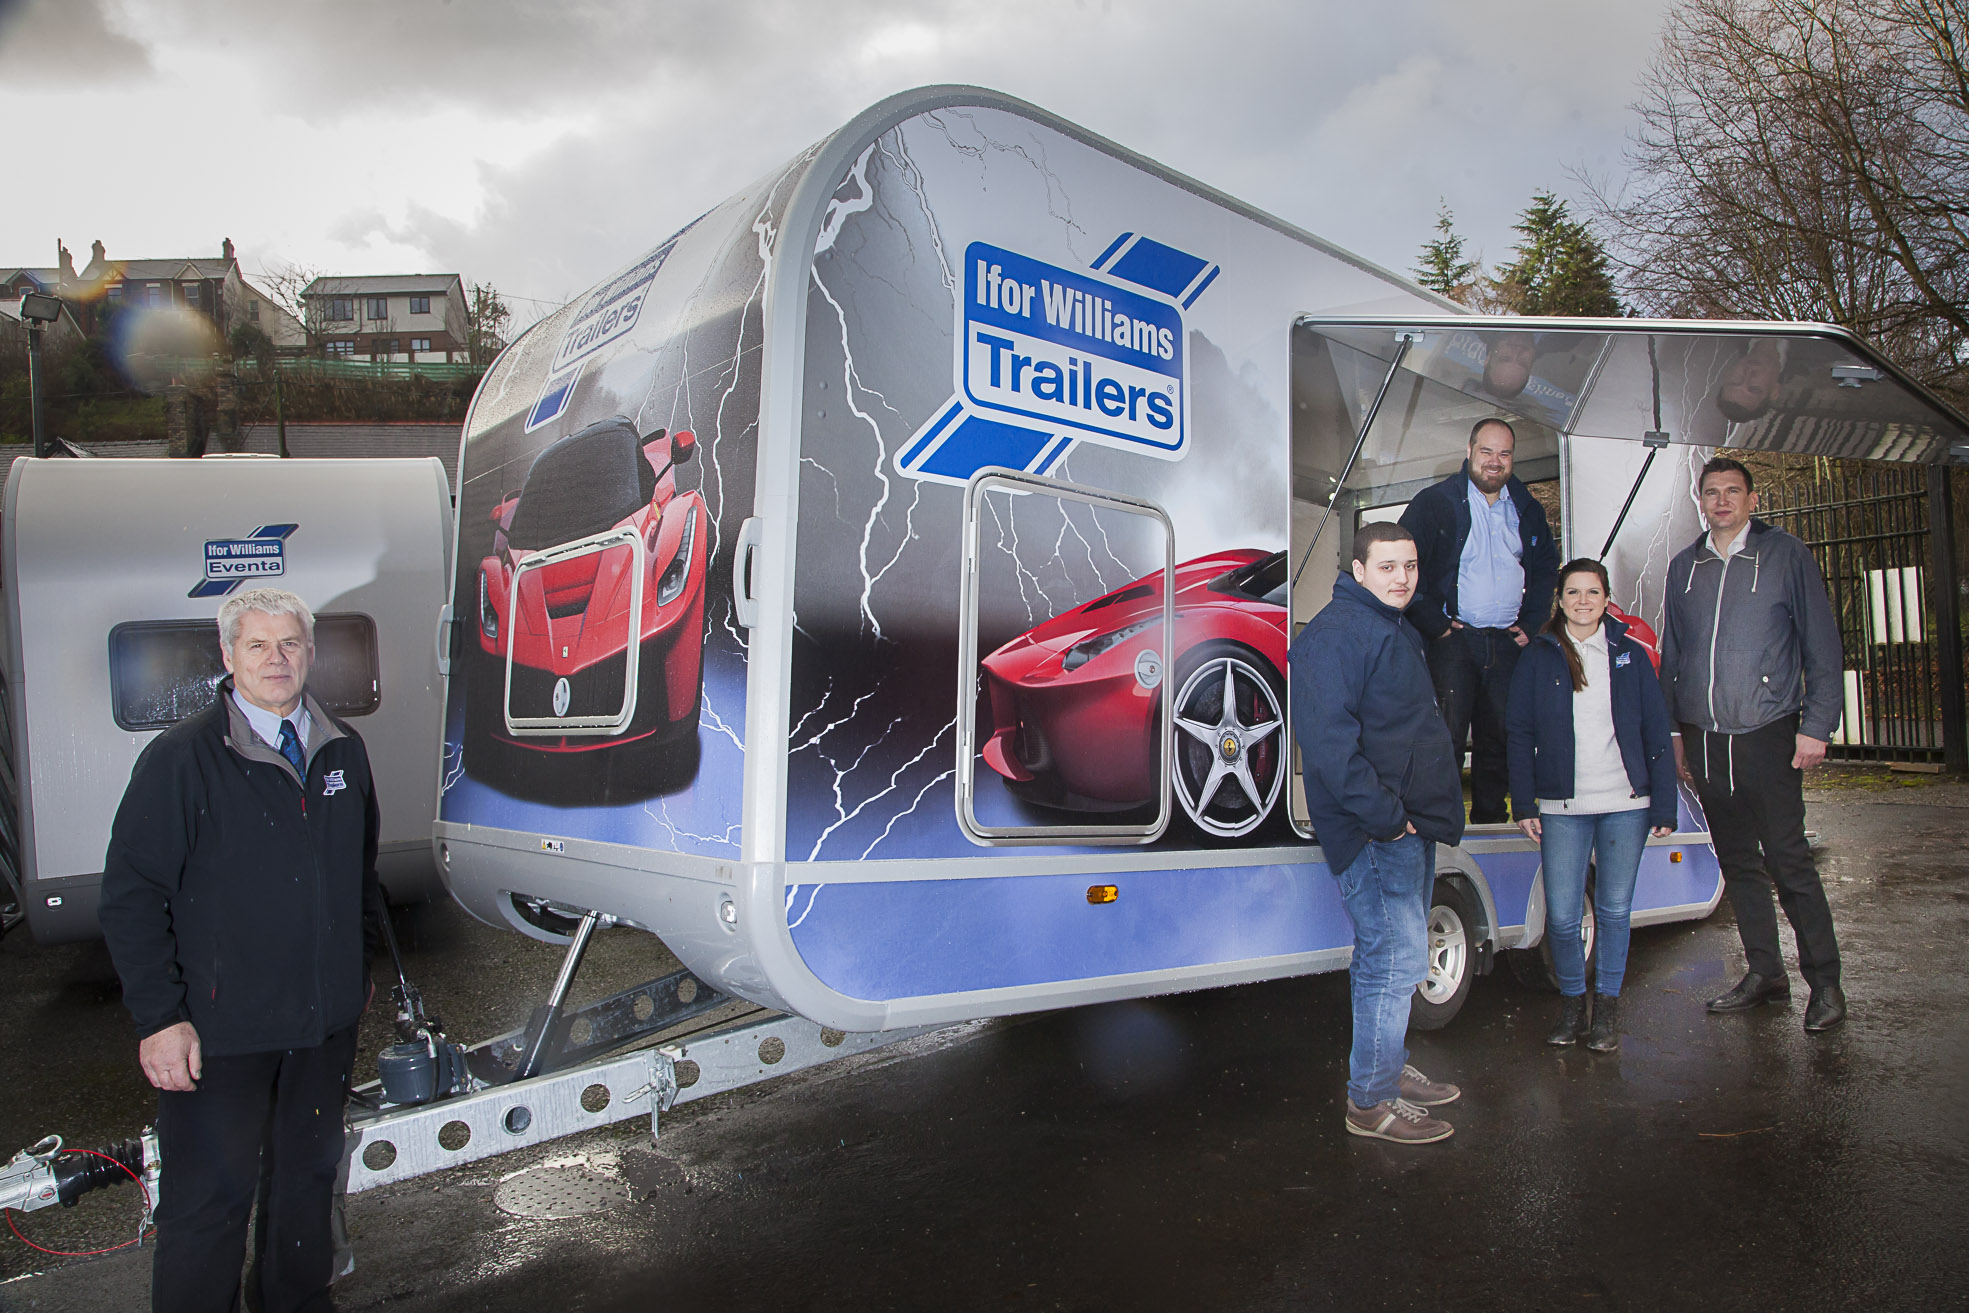 New car transporter puts trailer firm on road to more success